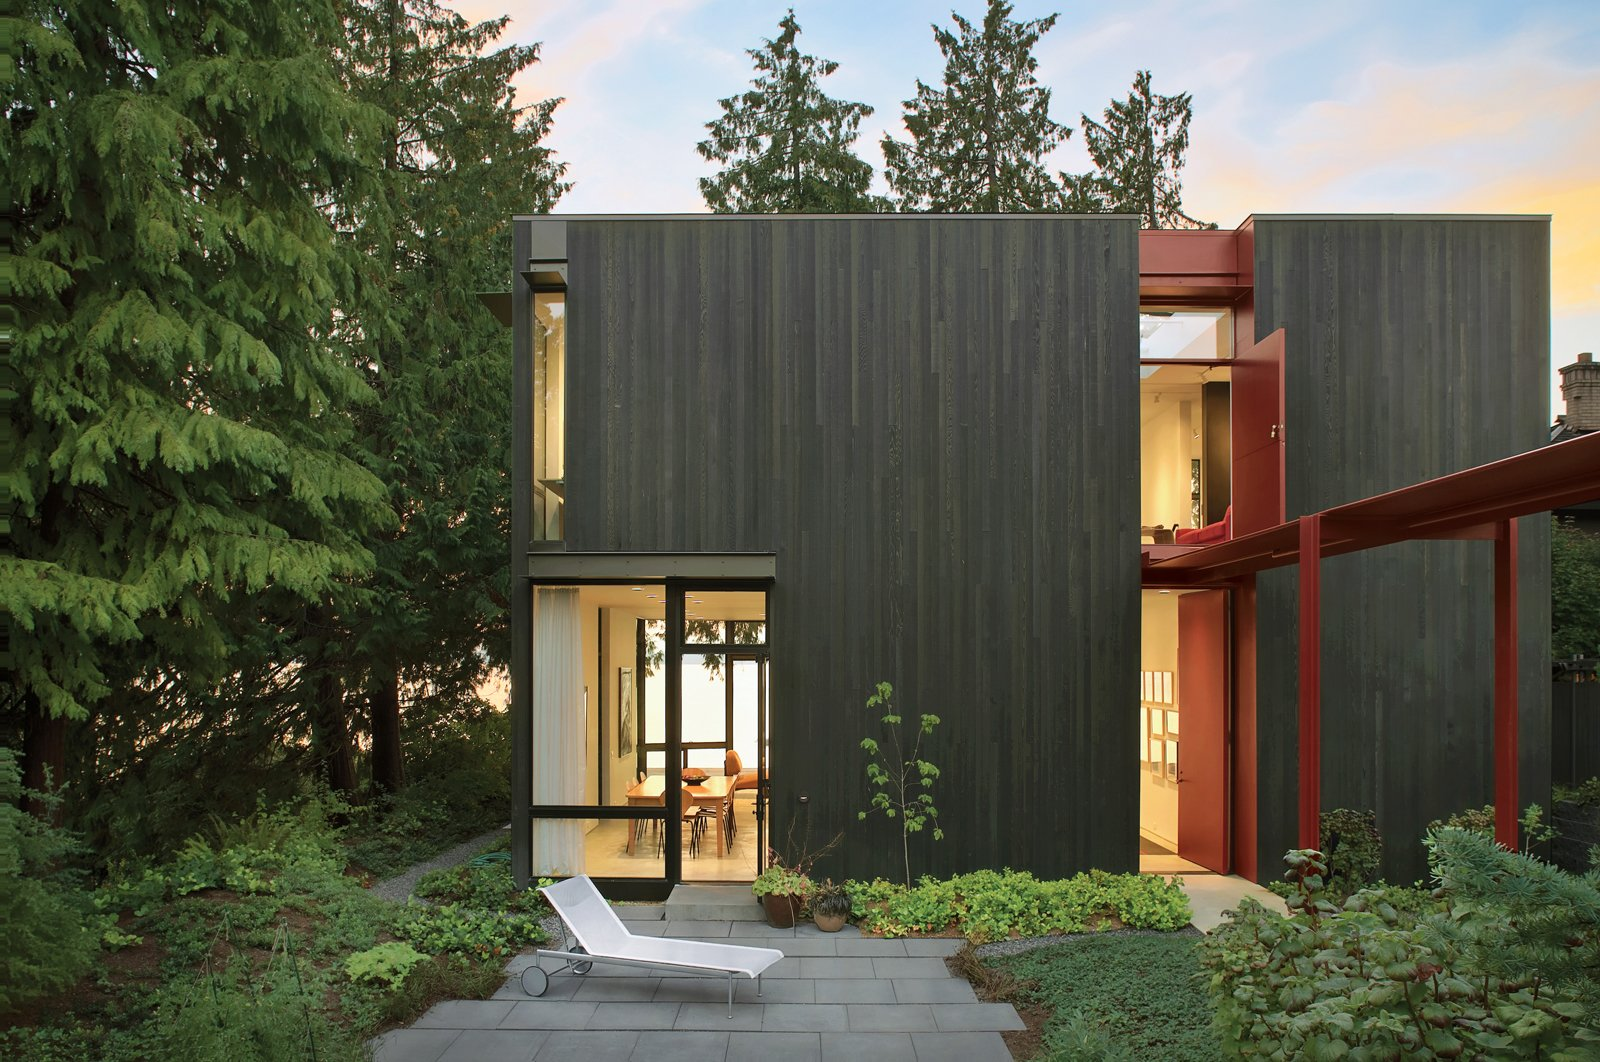 """A second-story Dutch door above the canopy ushers in sunlight and breezes. """"Light is really important in the Pacific Northwest because it's dark for most of the year,"""" says the resident. The cedar-clad facade is pierced with thoughtfully placed windows, which frame views and """"actively engage the idiosyncratic nature of the place,"""" says architect Tom Kundig.  Hail Cedar: 7 Houses that Make Use of Cedar Wood by Diana Budds from Modern Steel Homes"""